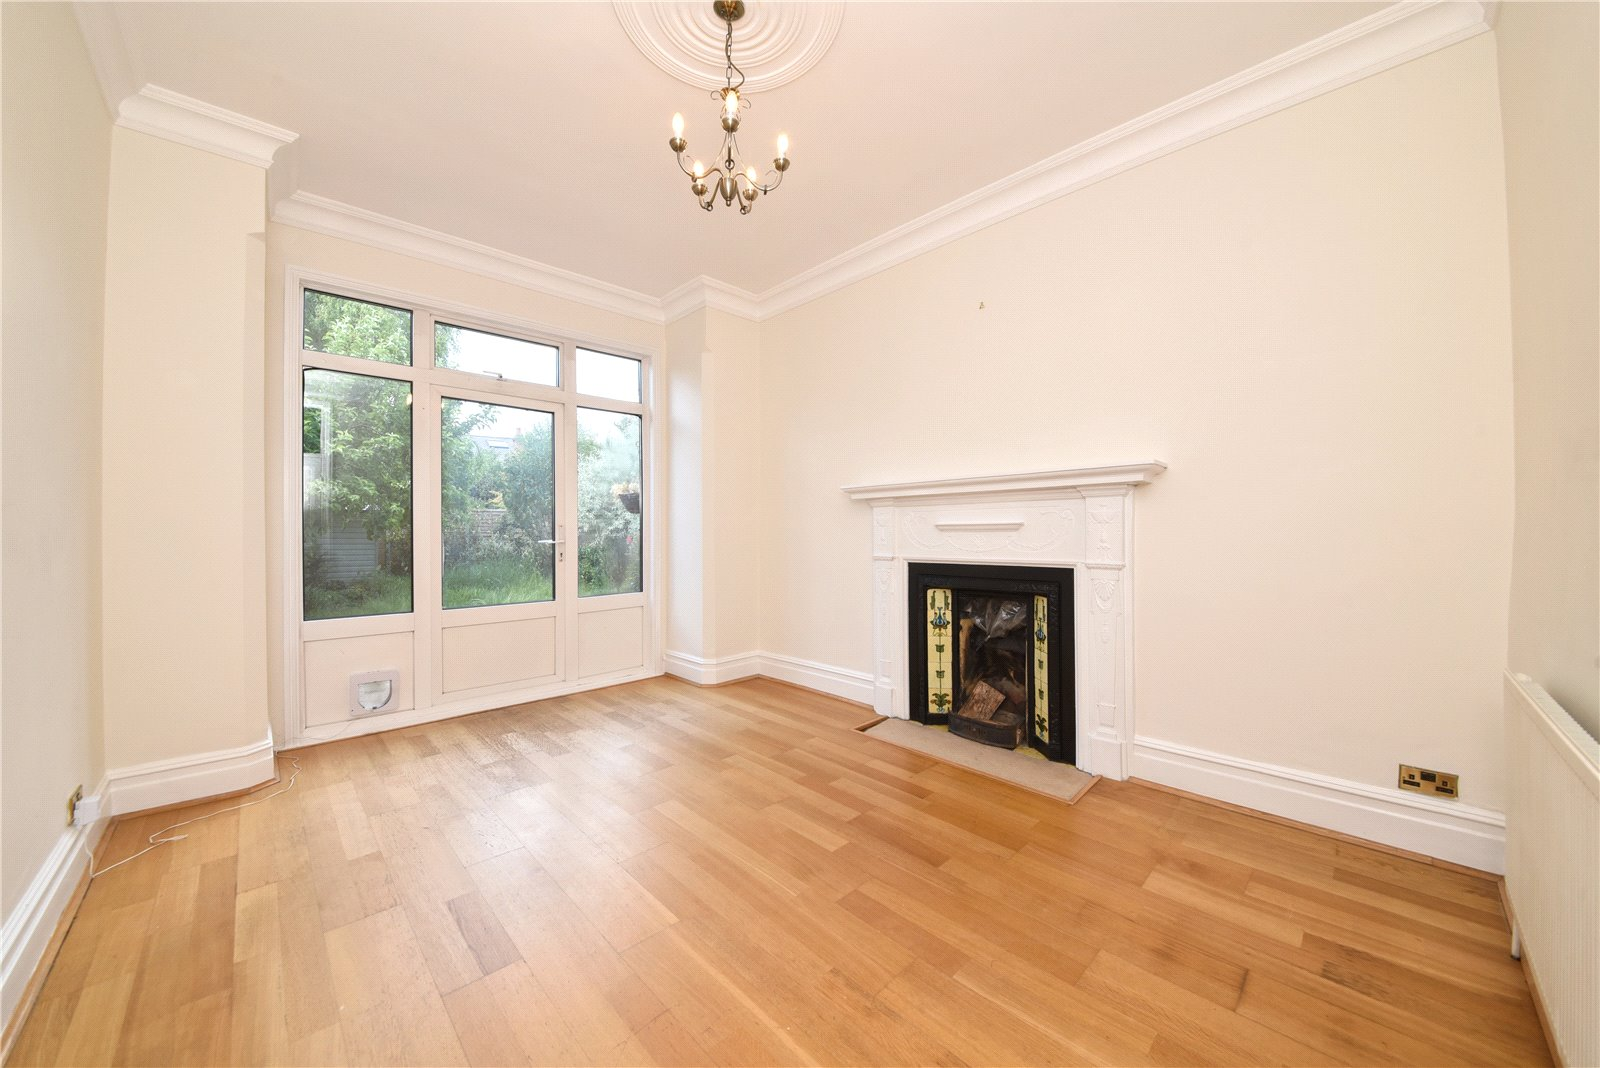 4 bed house for sale in Finchley, N3 2AR  - Property Image 5